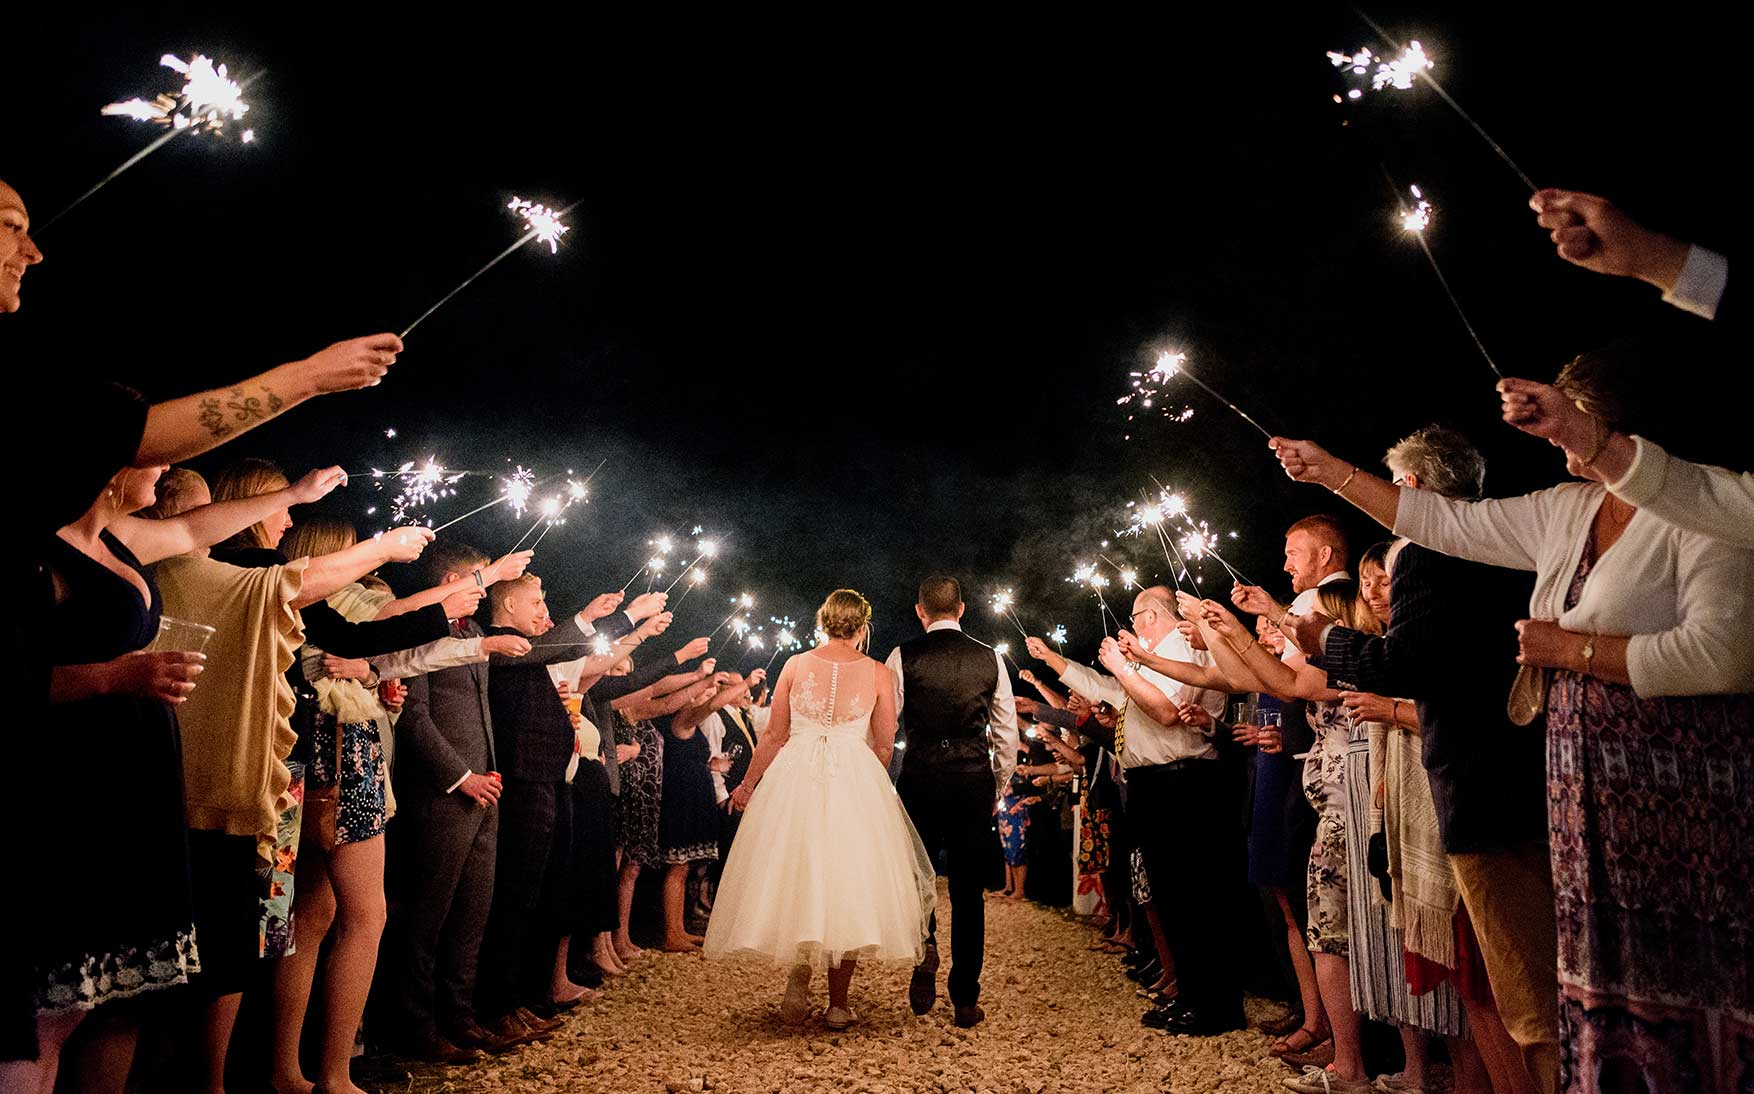 Guests hole up sparklers to salute the happy couple